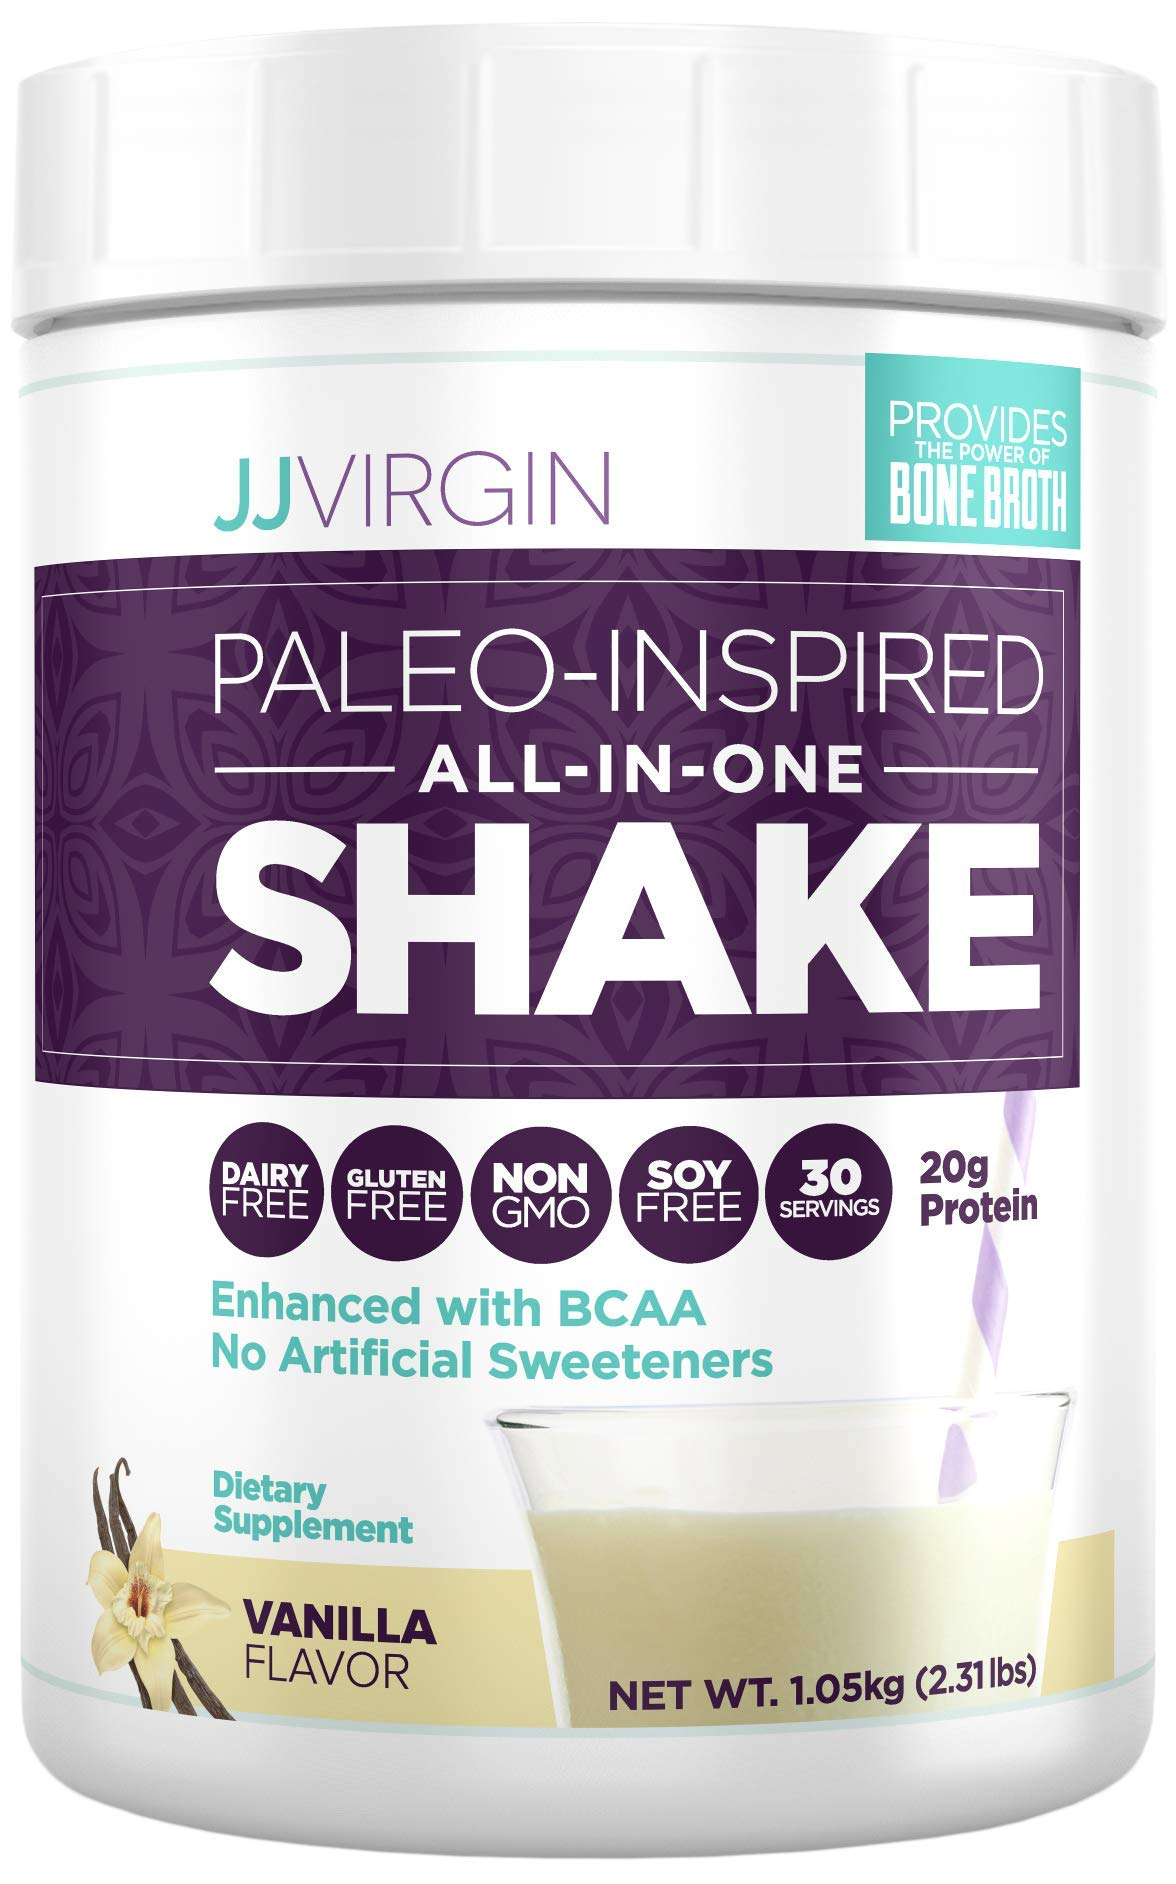 JJ Virgin Vanilla Paleo-Inspired All-in-One Shake - Paleo + Keto-Friendly Protein Powder (30 Servings, 2.31 Pounds) by The Virgin Diet